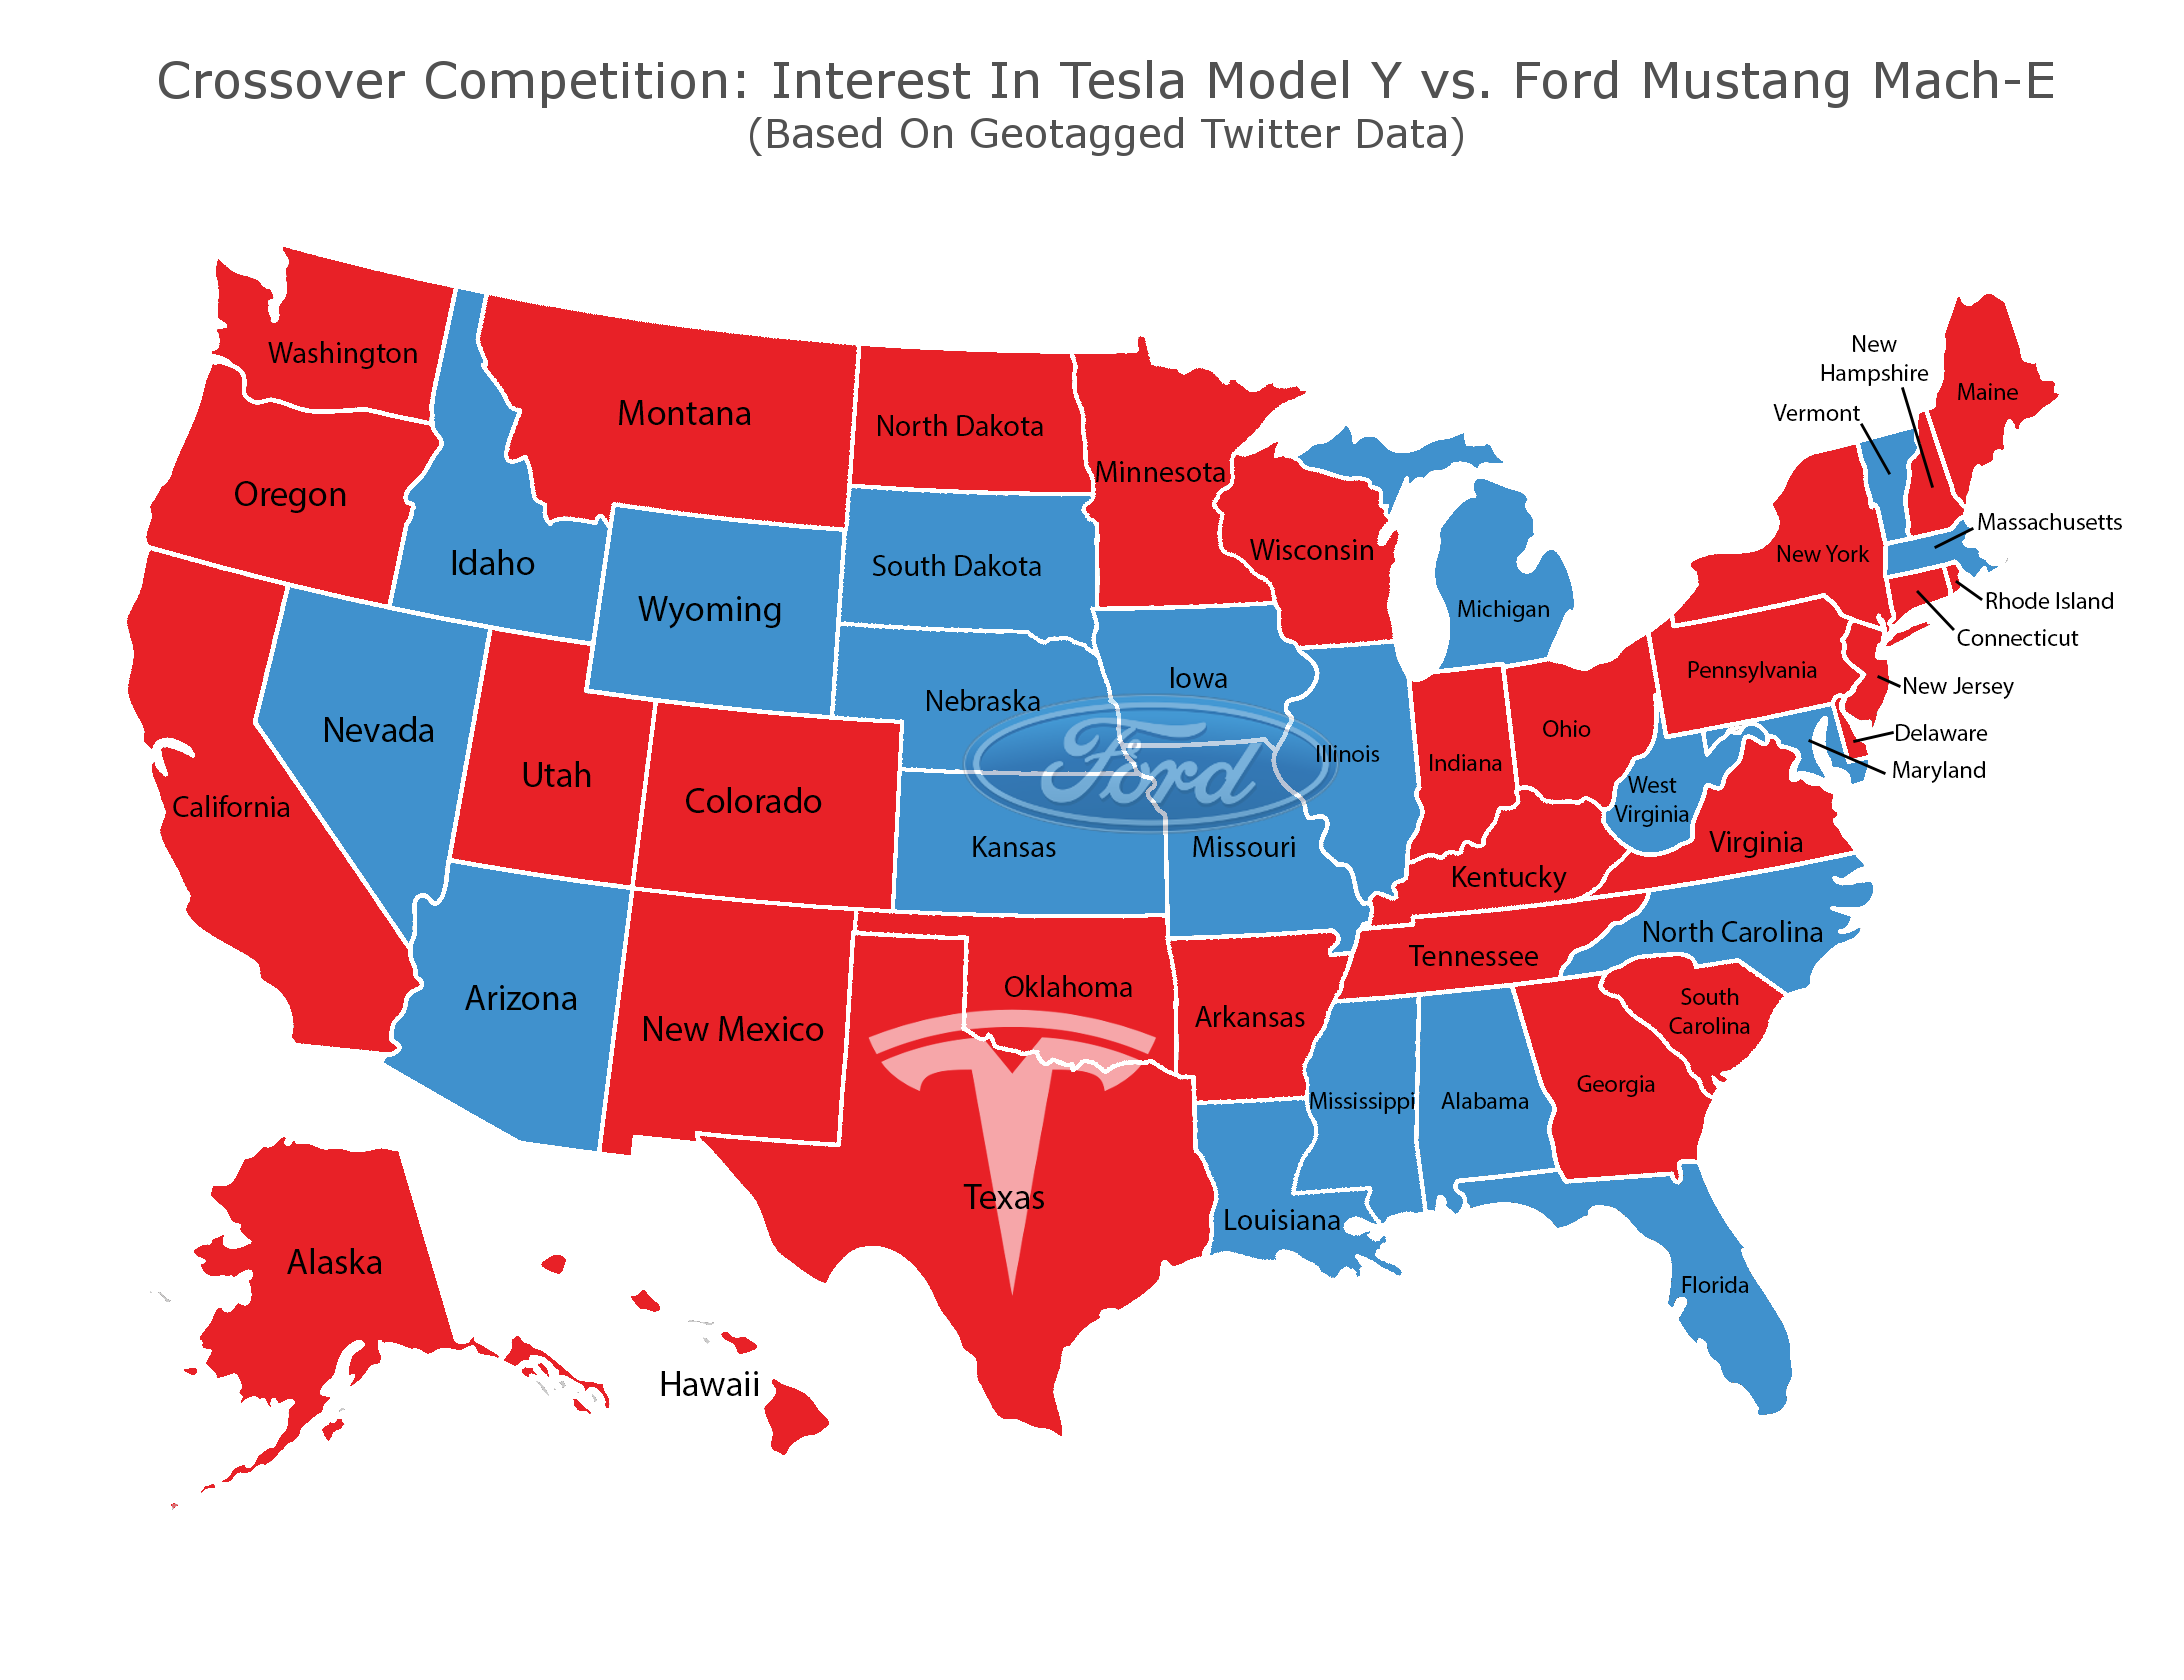 Interest in Tesla Model Y vs. Ford Mustang Mach-E based on geotagged Twitter data.